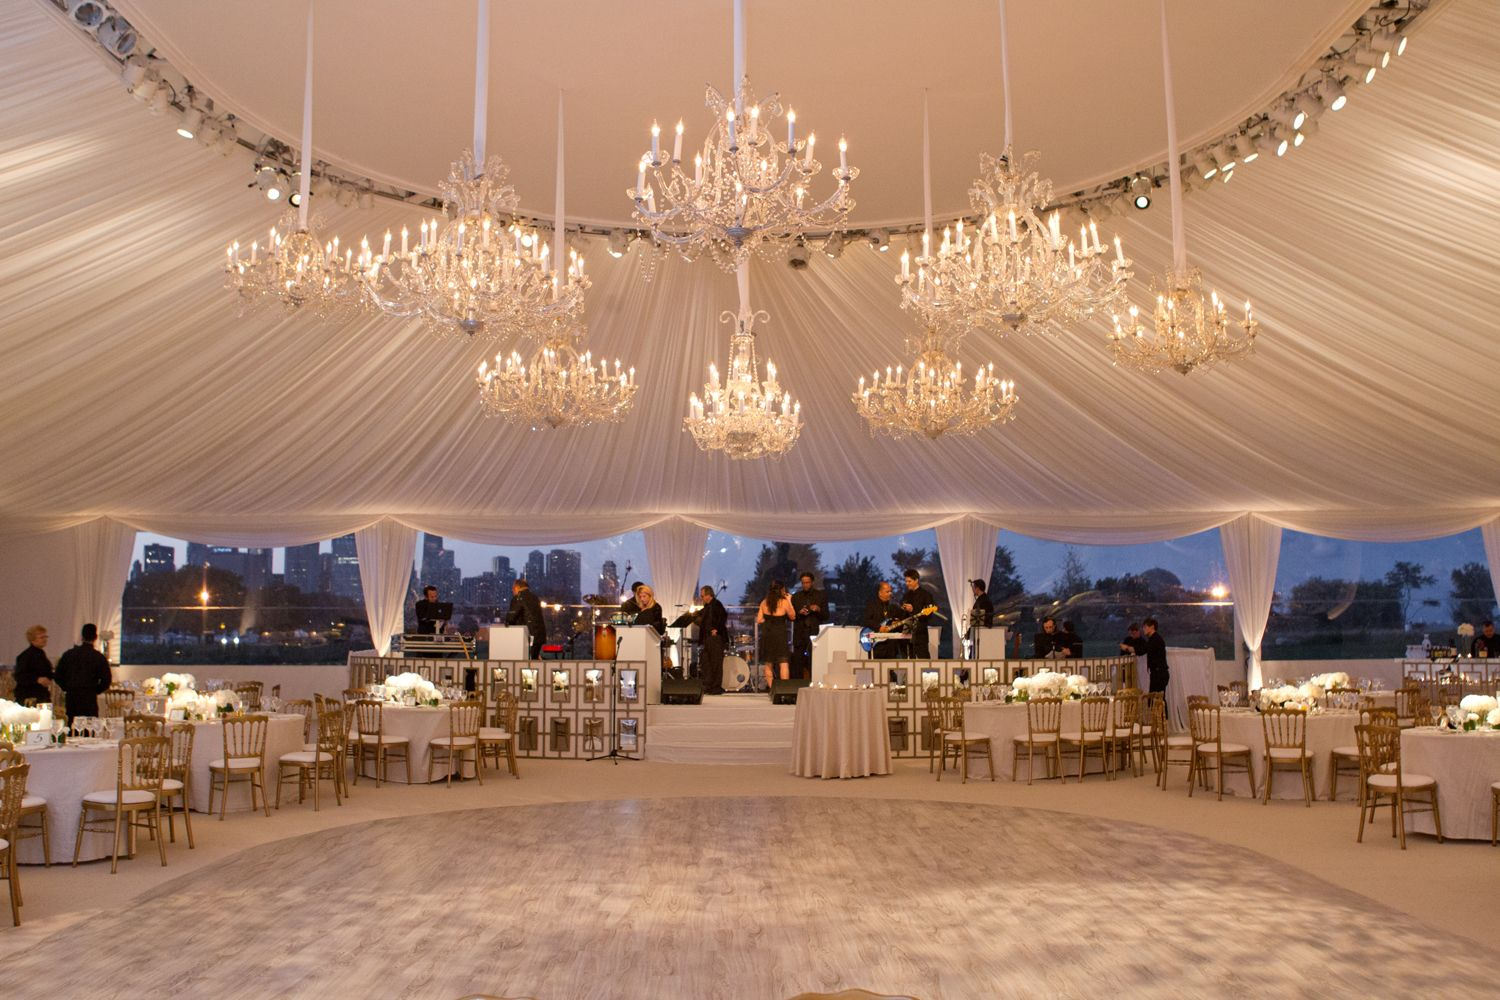 Great Wedding Venue Near Chicago: 15 Best Outdoor Wedding Venues In Chicago …